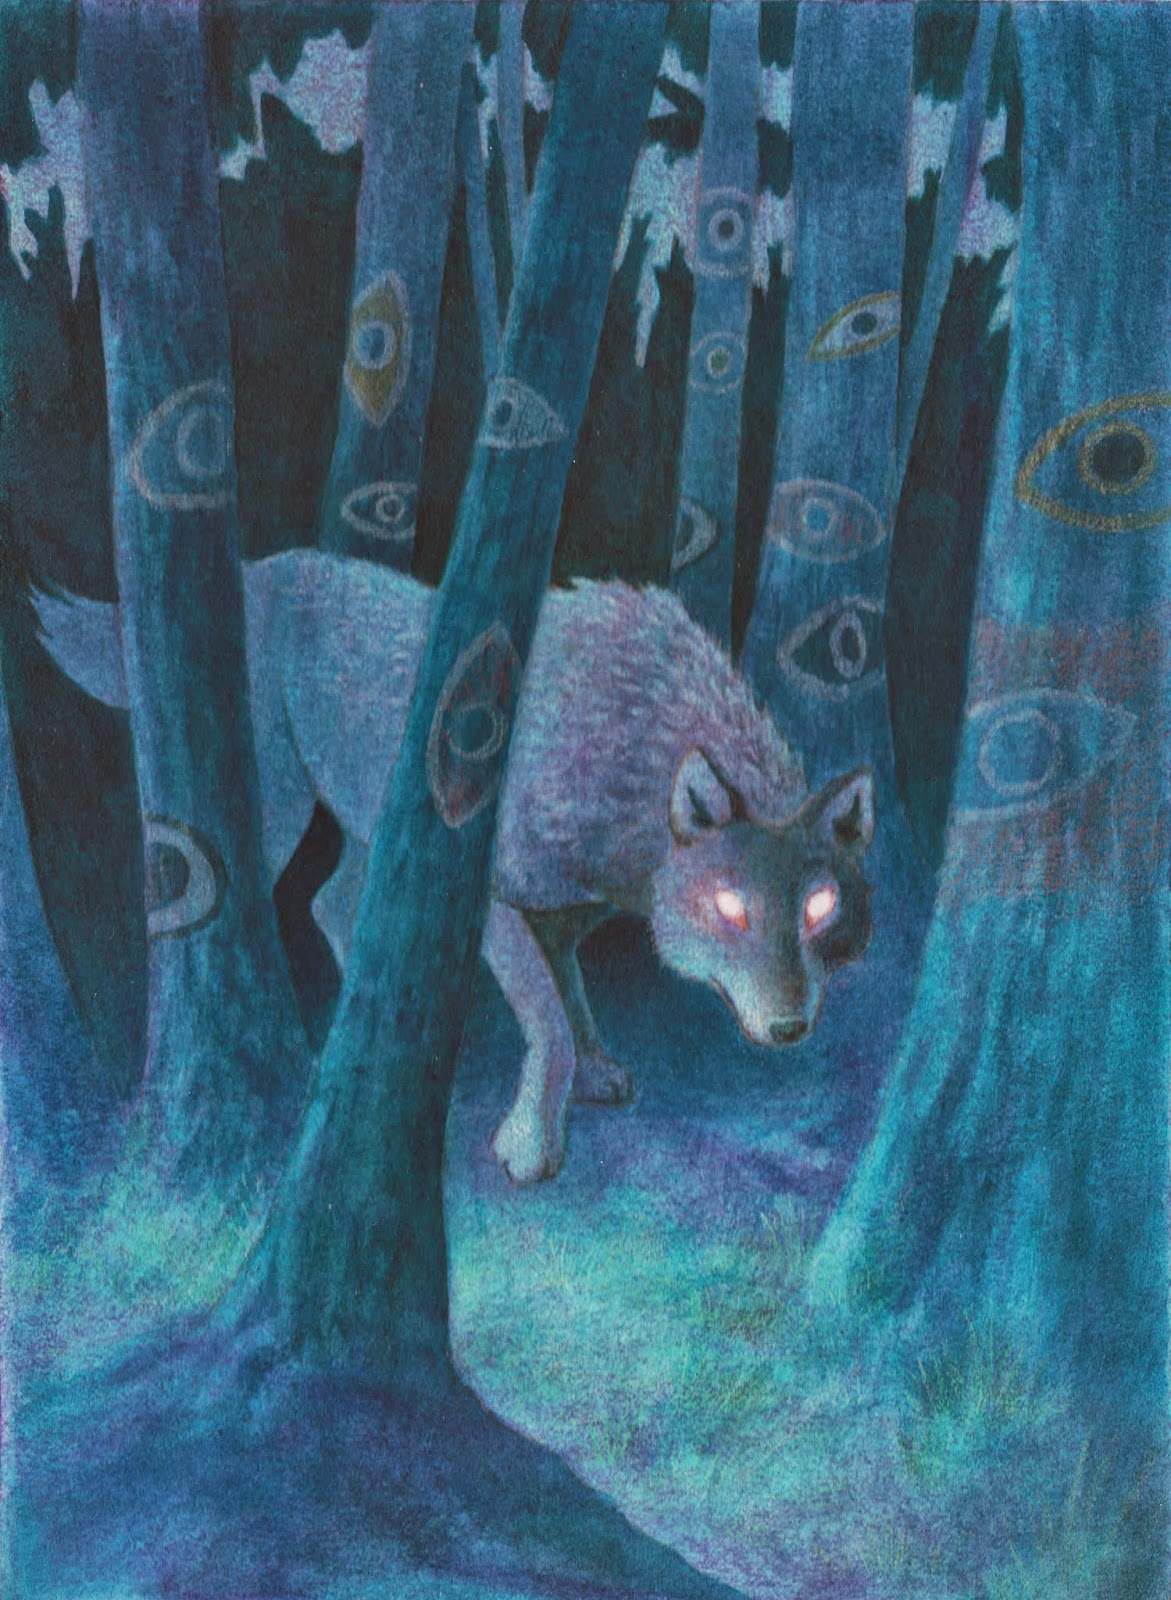 wolf illustration, wolf painting